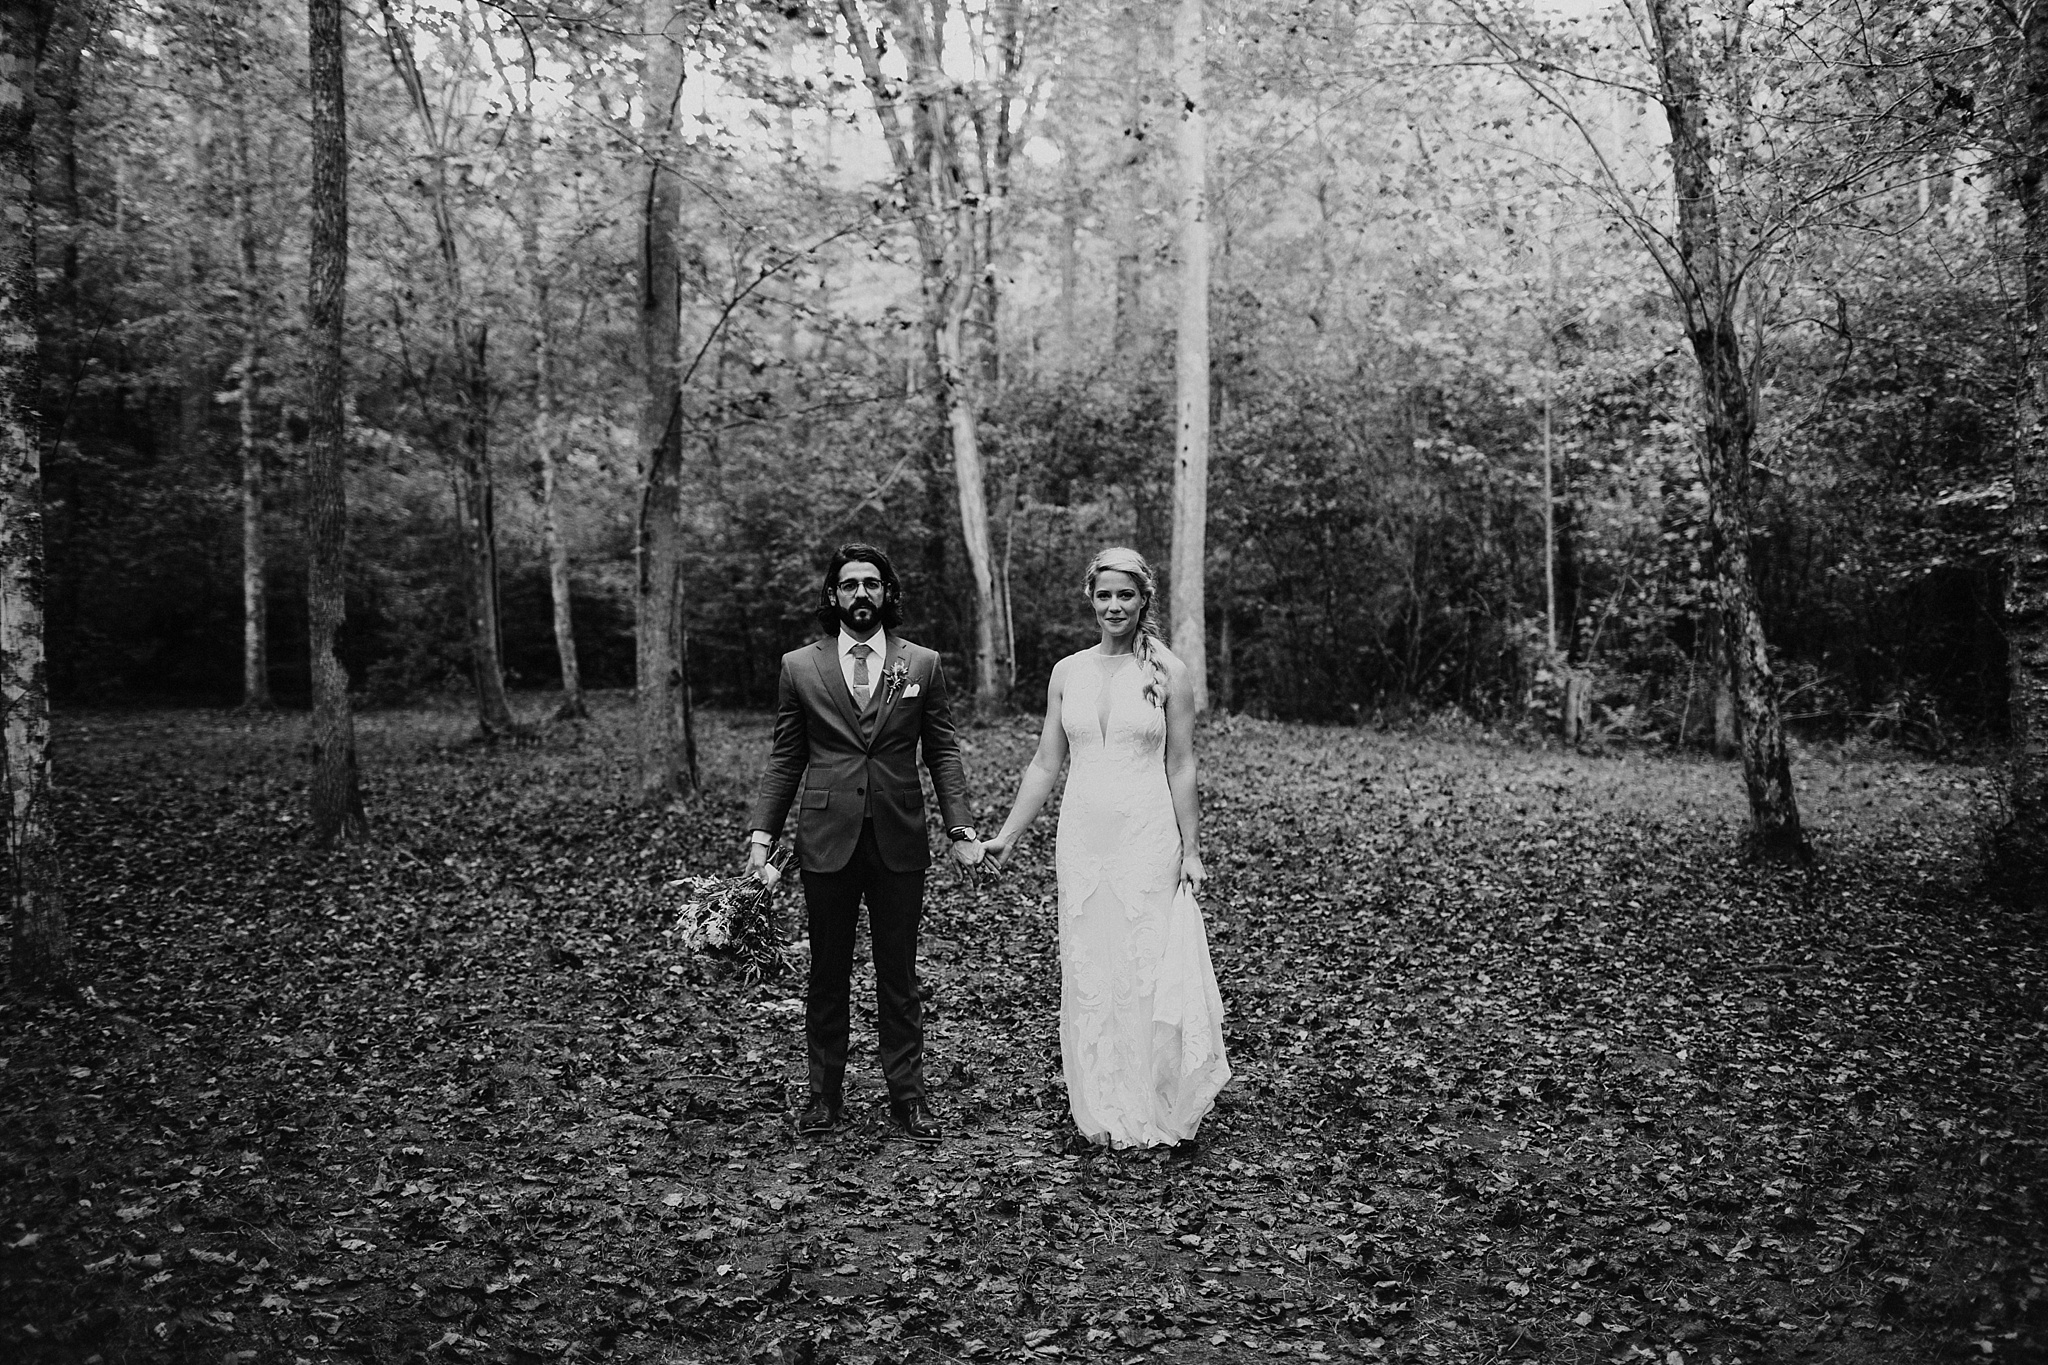 sugarboo_farms_intimate_mountain_wedding022.JPG